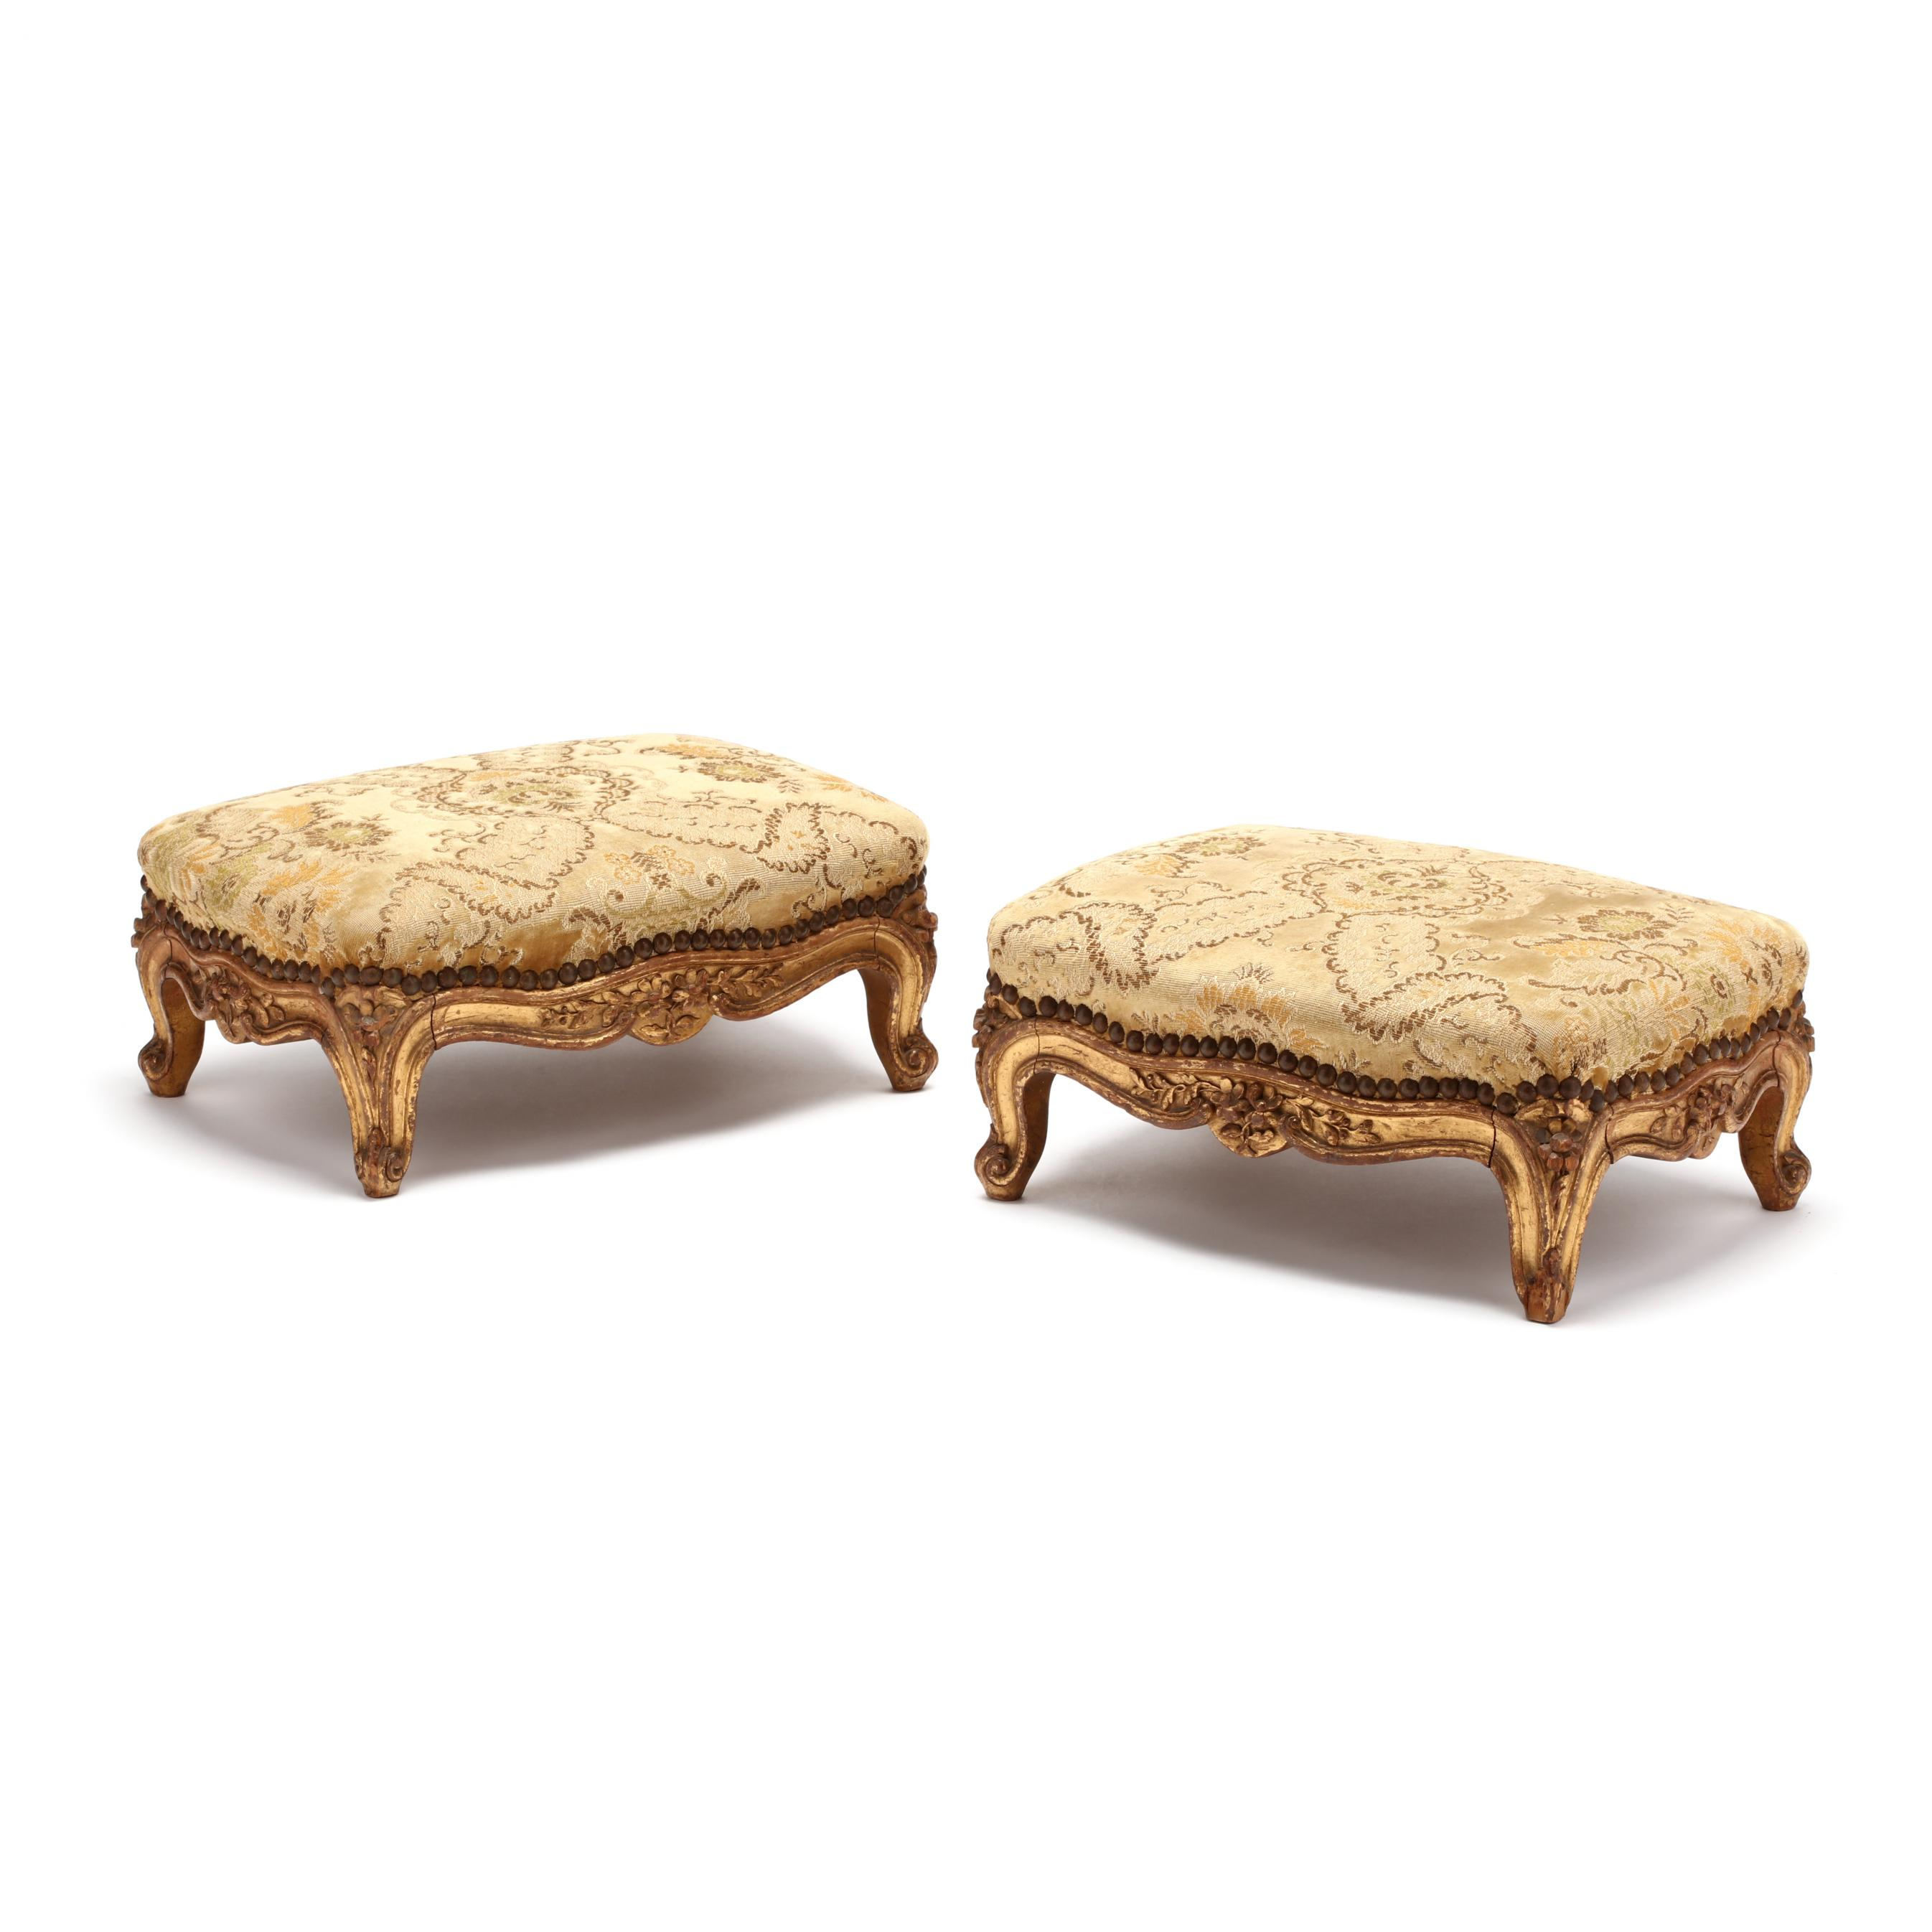 pair-of-antique-louis-xv-style-carved-and-gilt-footstools